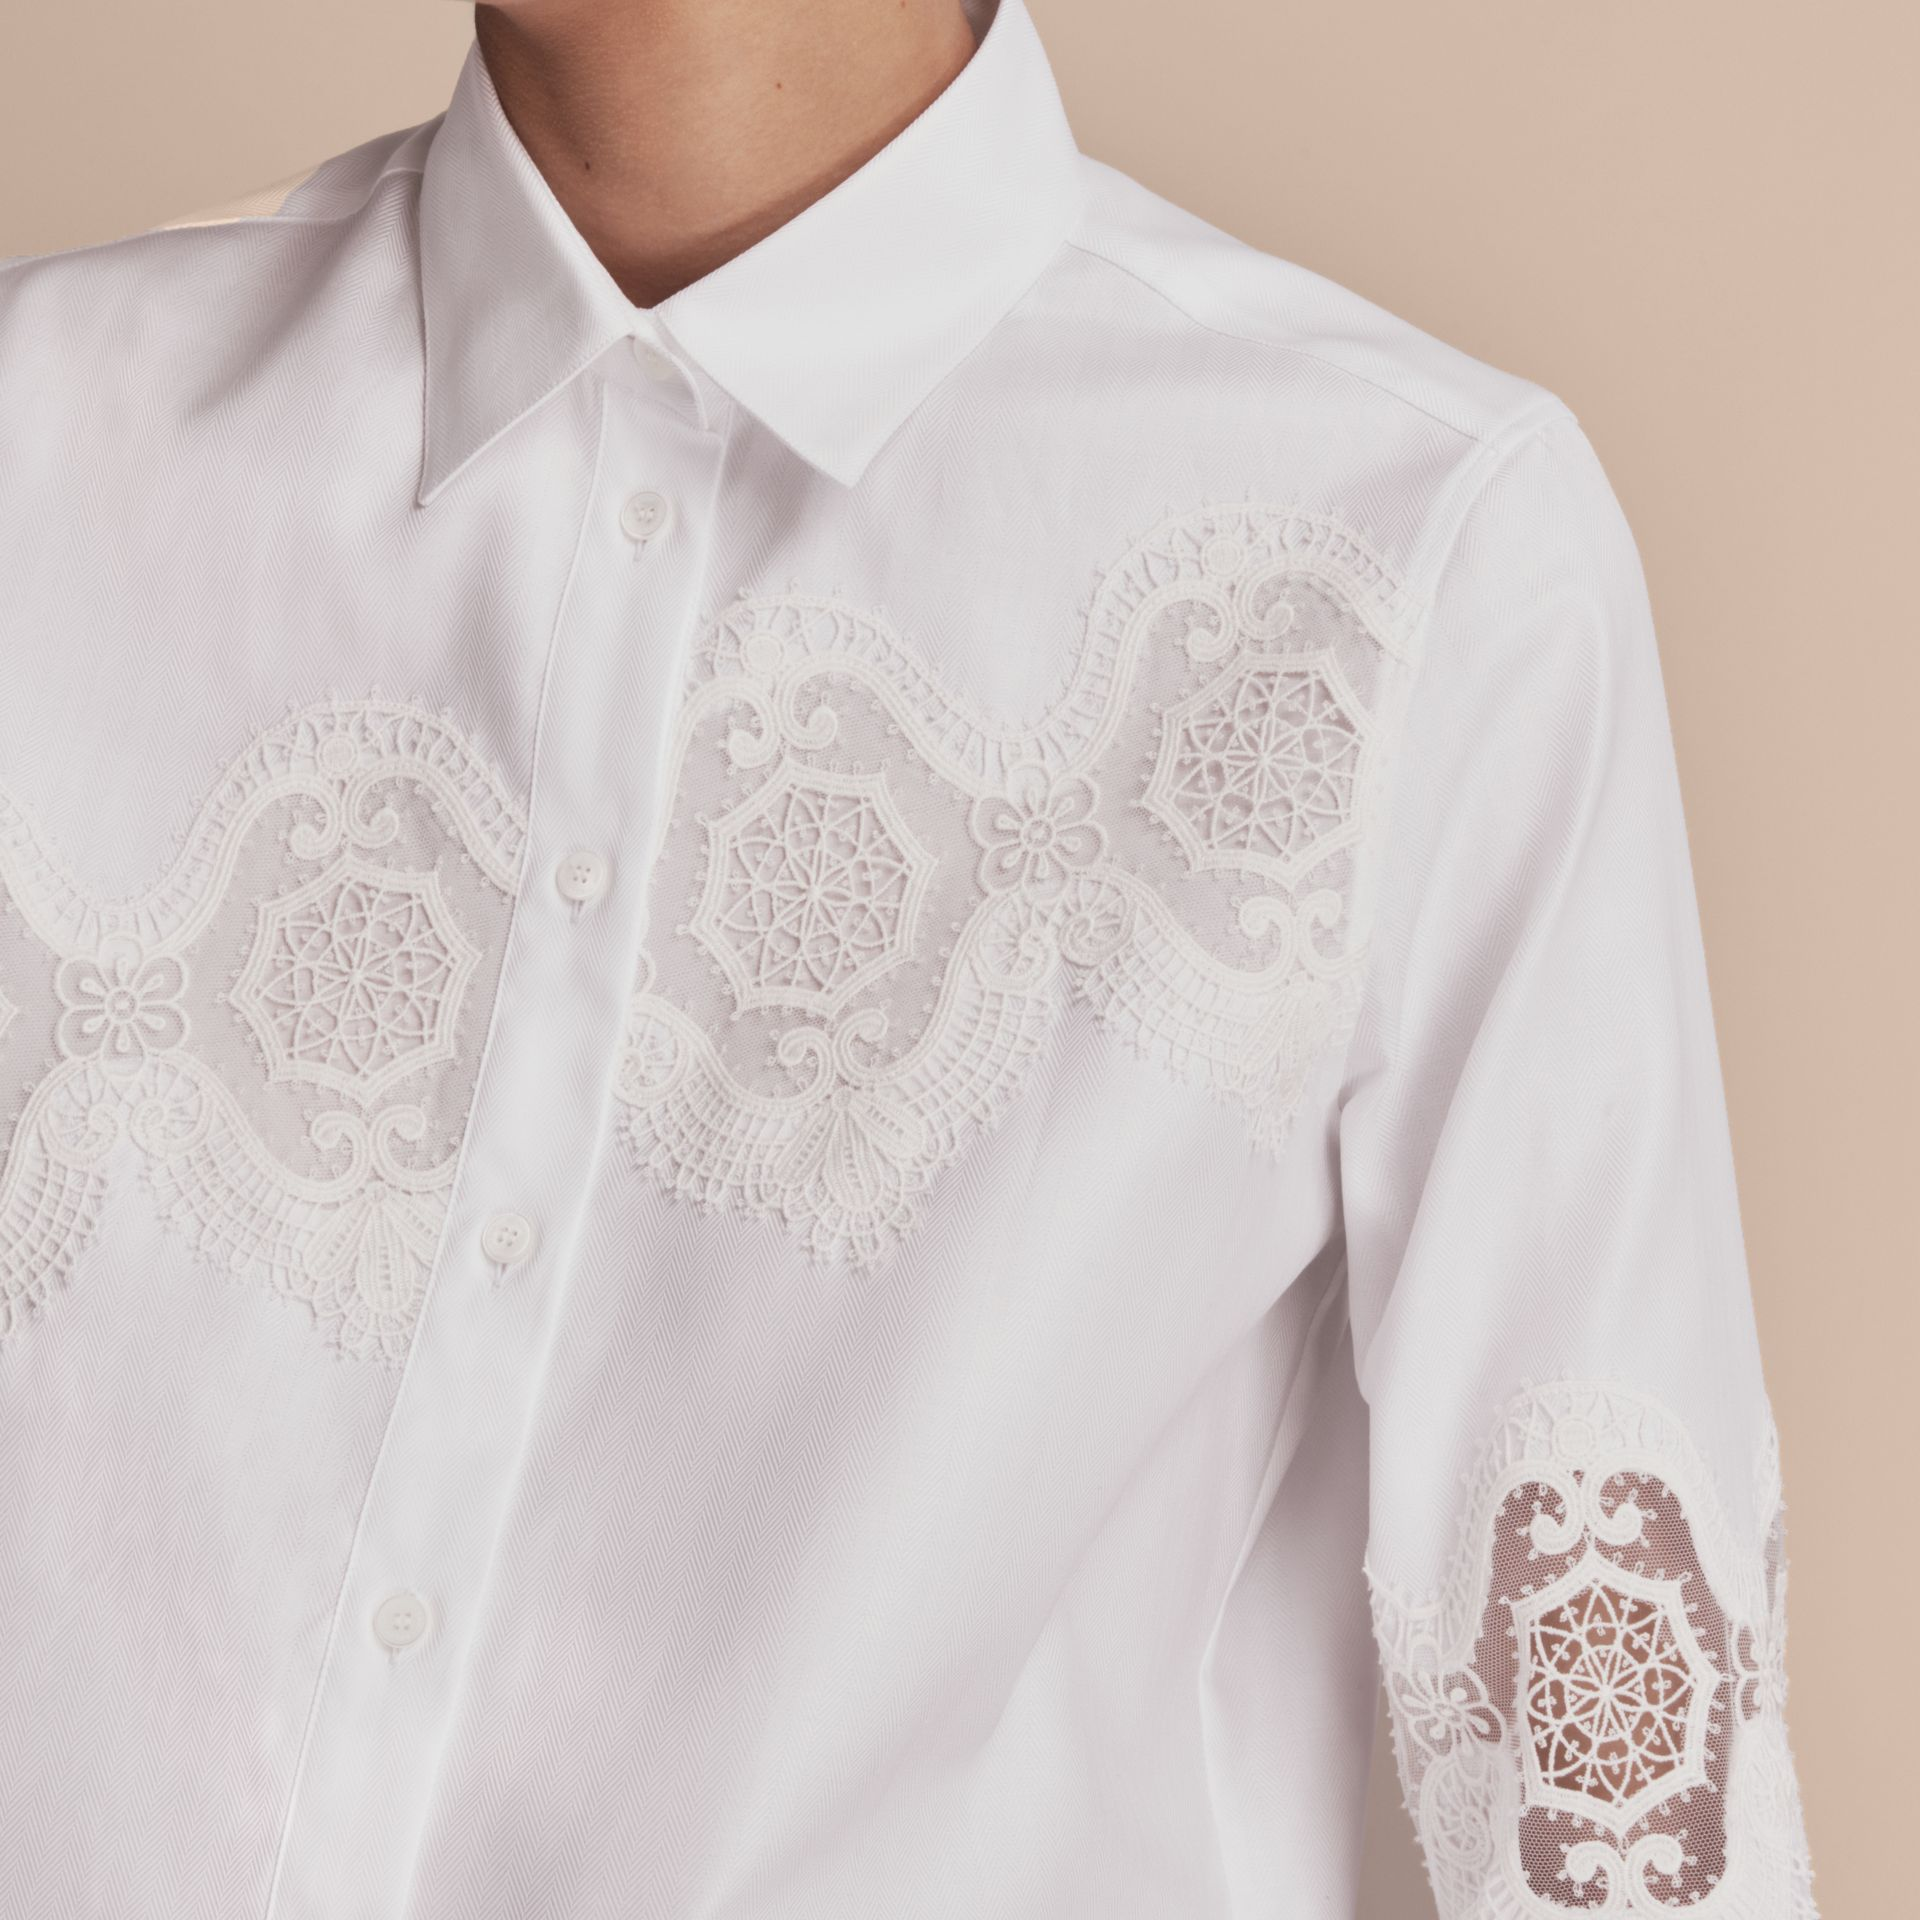 Lace Cutwork Herringbone Cotton Shirt in White - Women | Burberry - gallery image 5